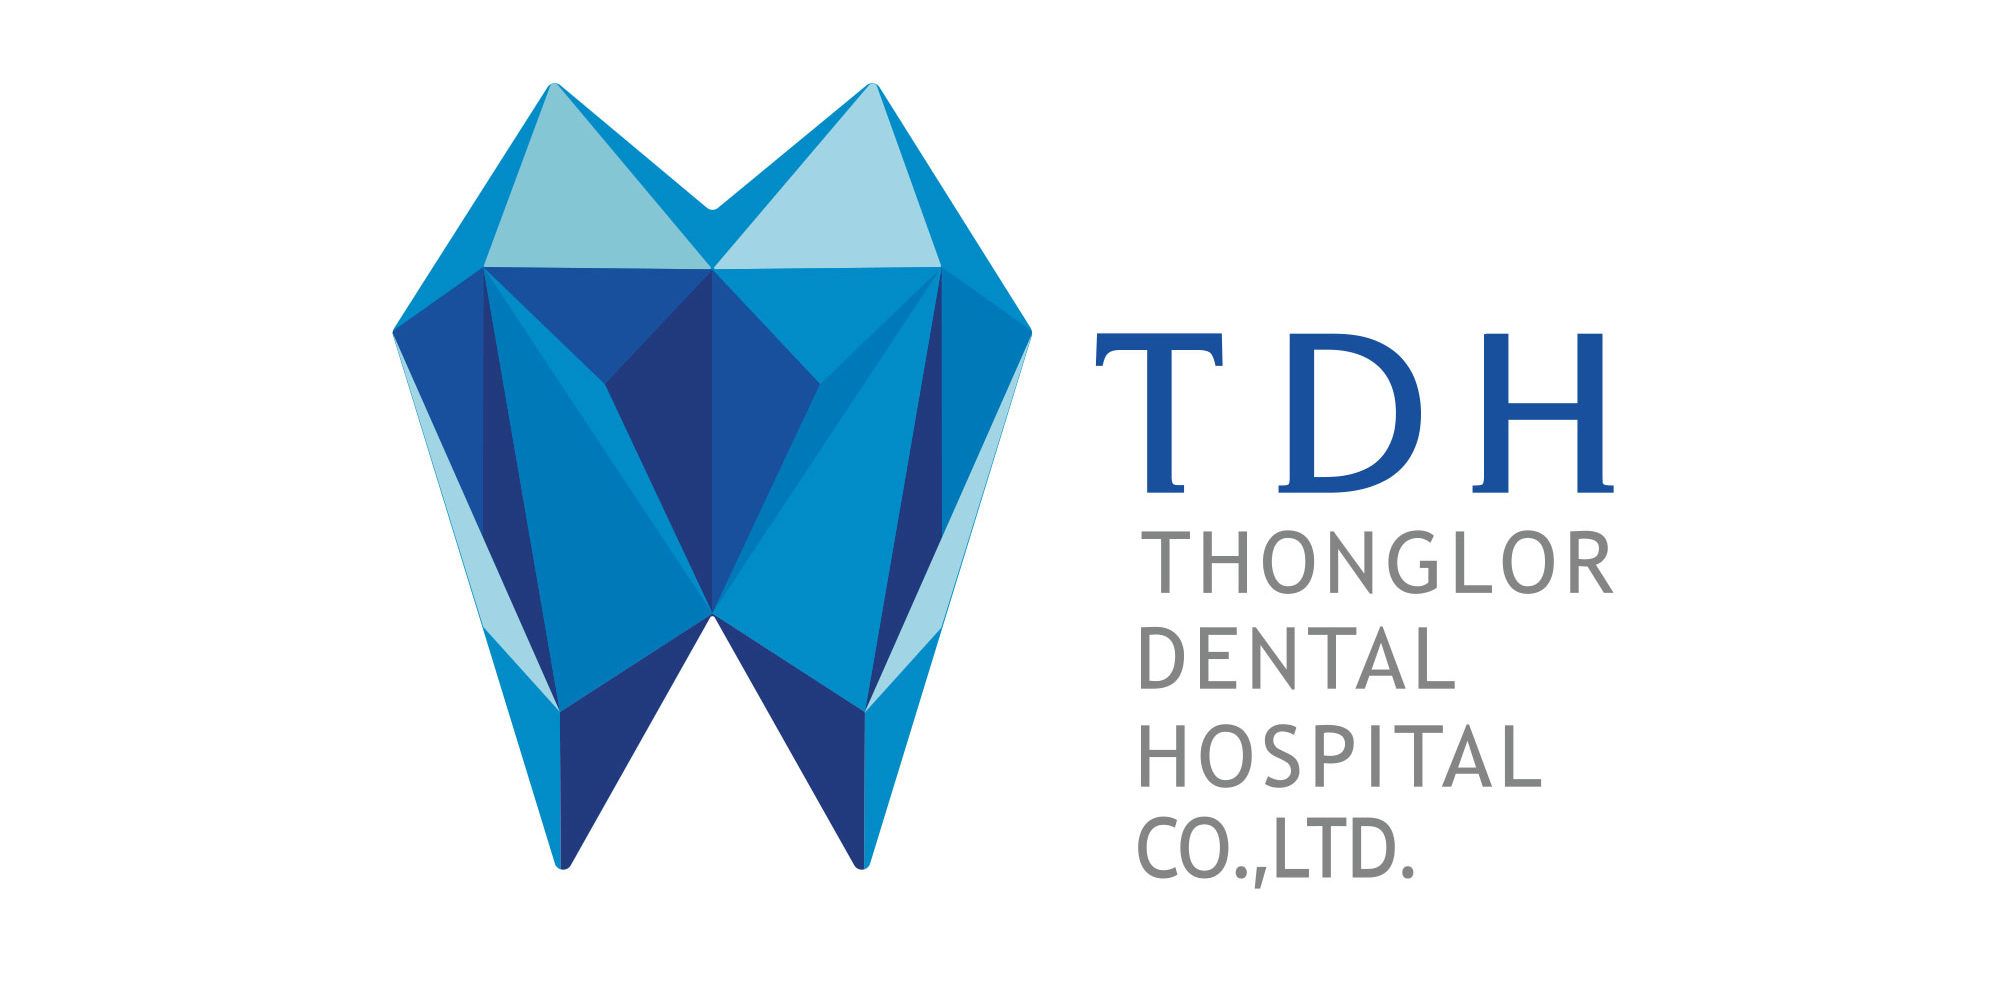 Thonglor Dental Hospital Co.,Ltd.